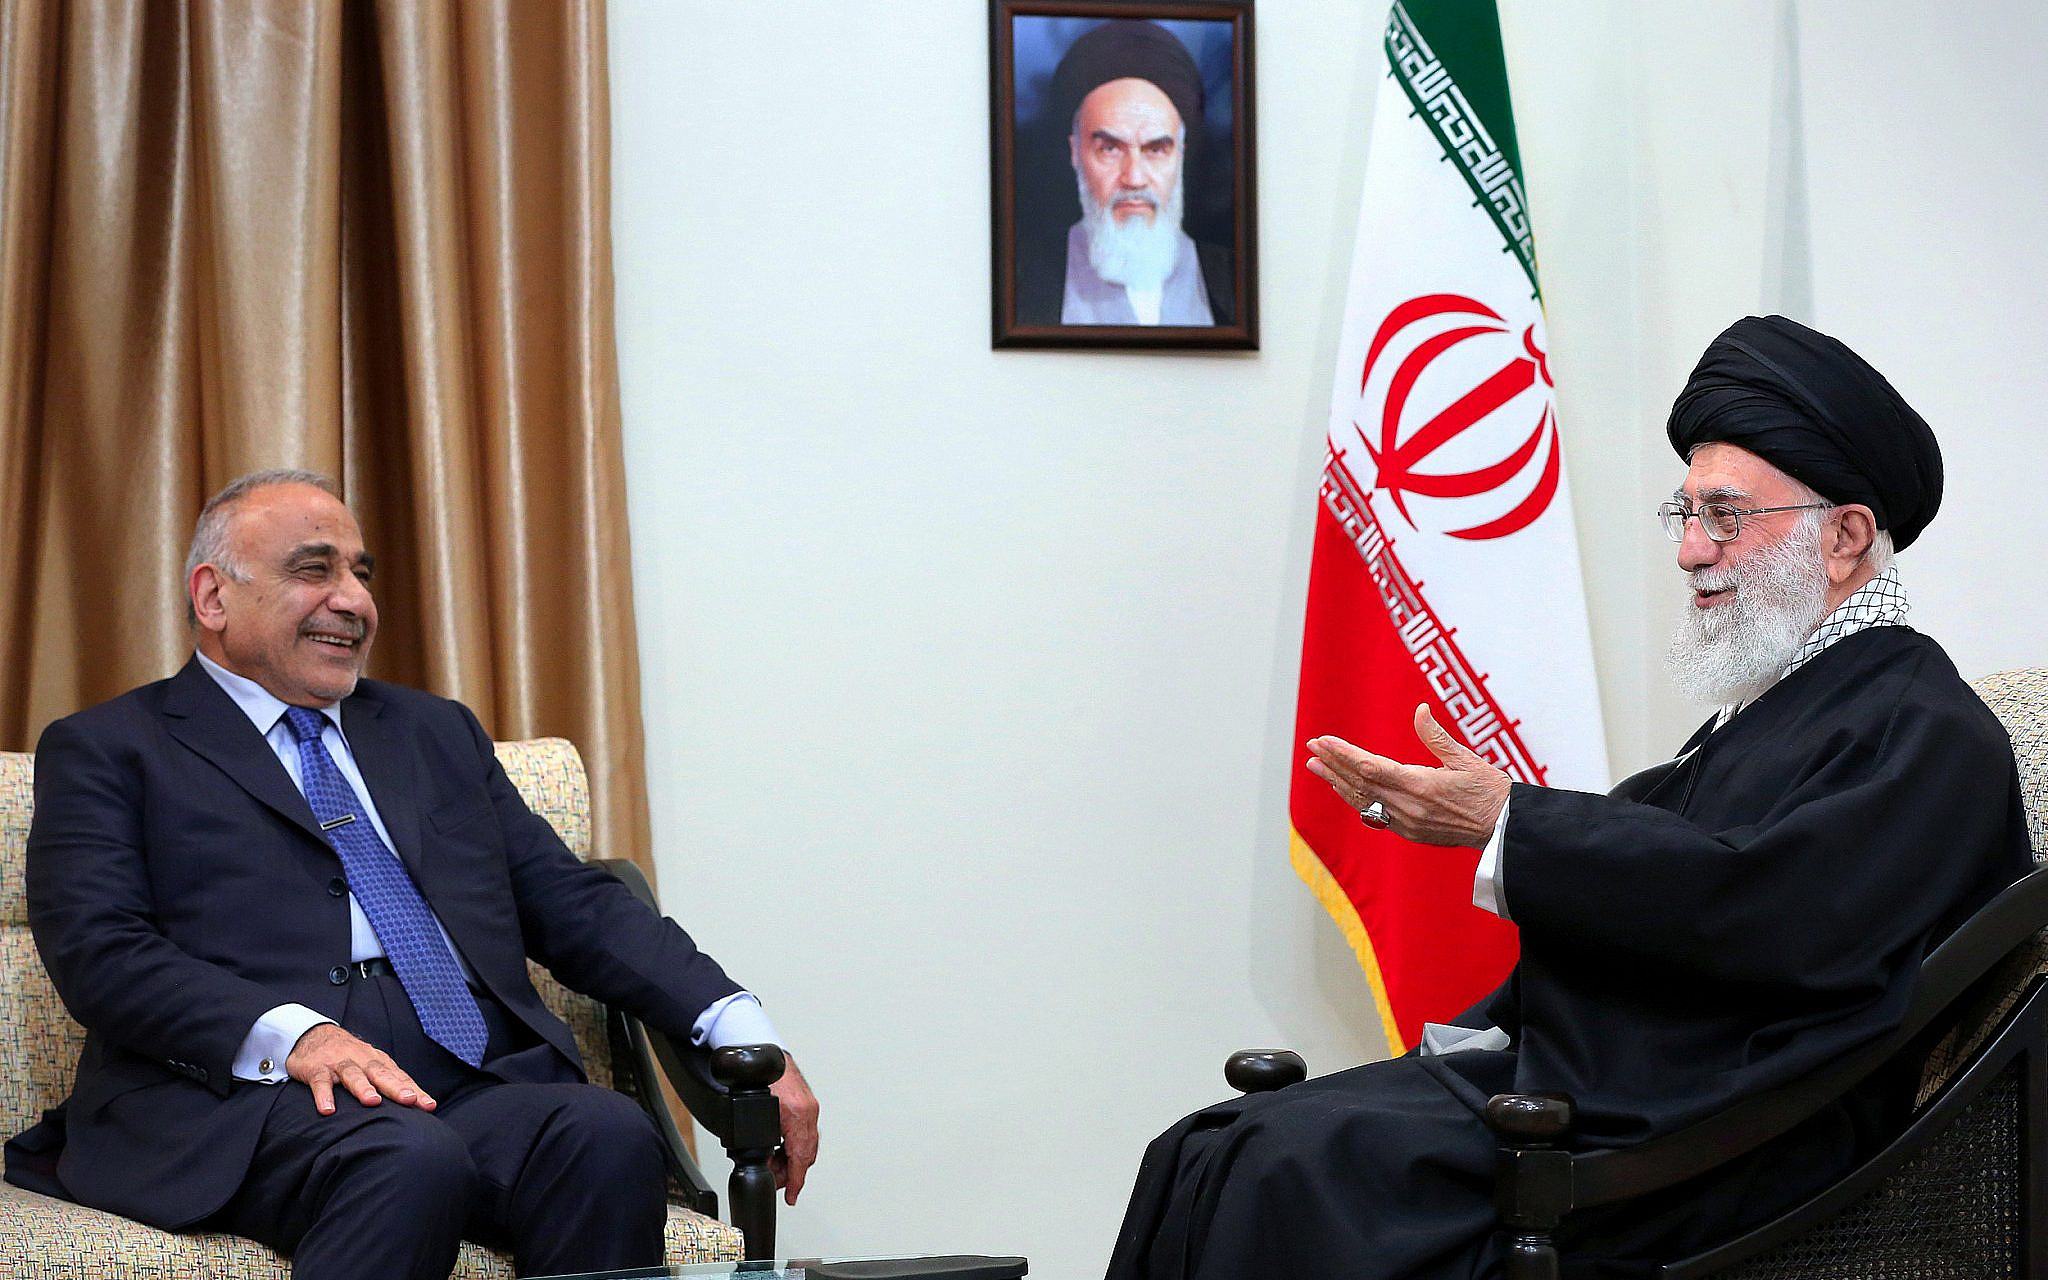 'Enemies seek to sow discord' between Iran and Iraq: Ayatollah Ali Khamenei